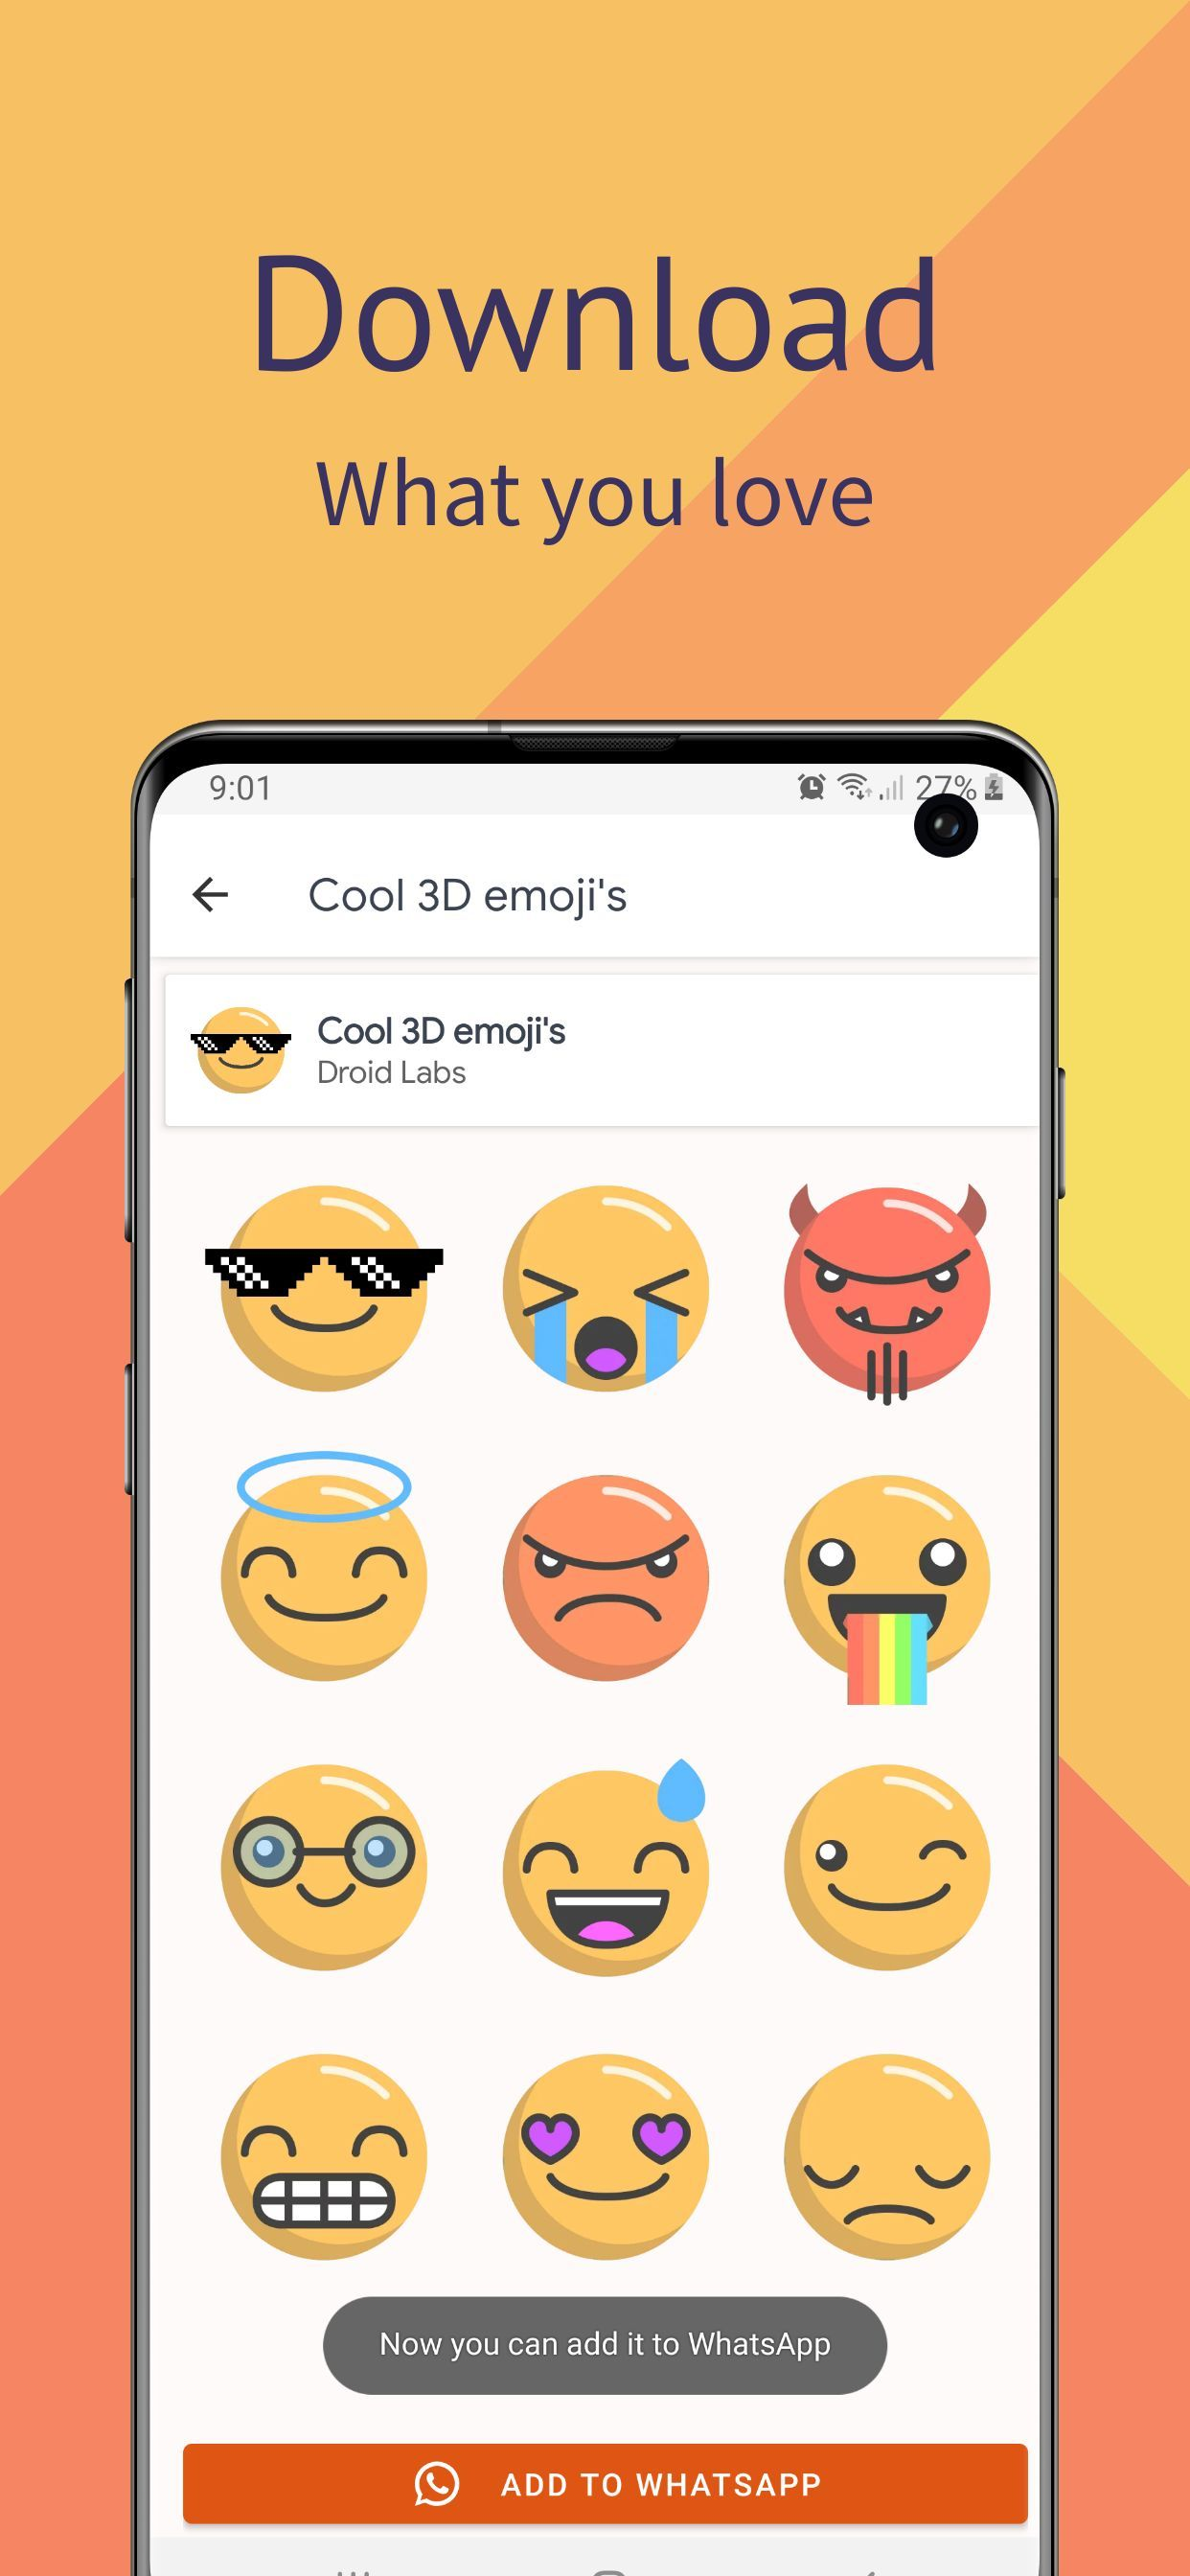 Samsung S10 Screenshot 43 template. Quickly edit text, colors, images, and more for free.